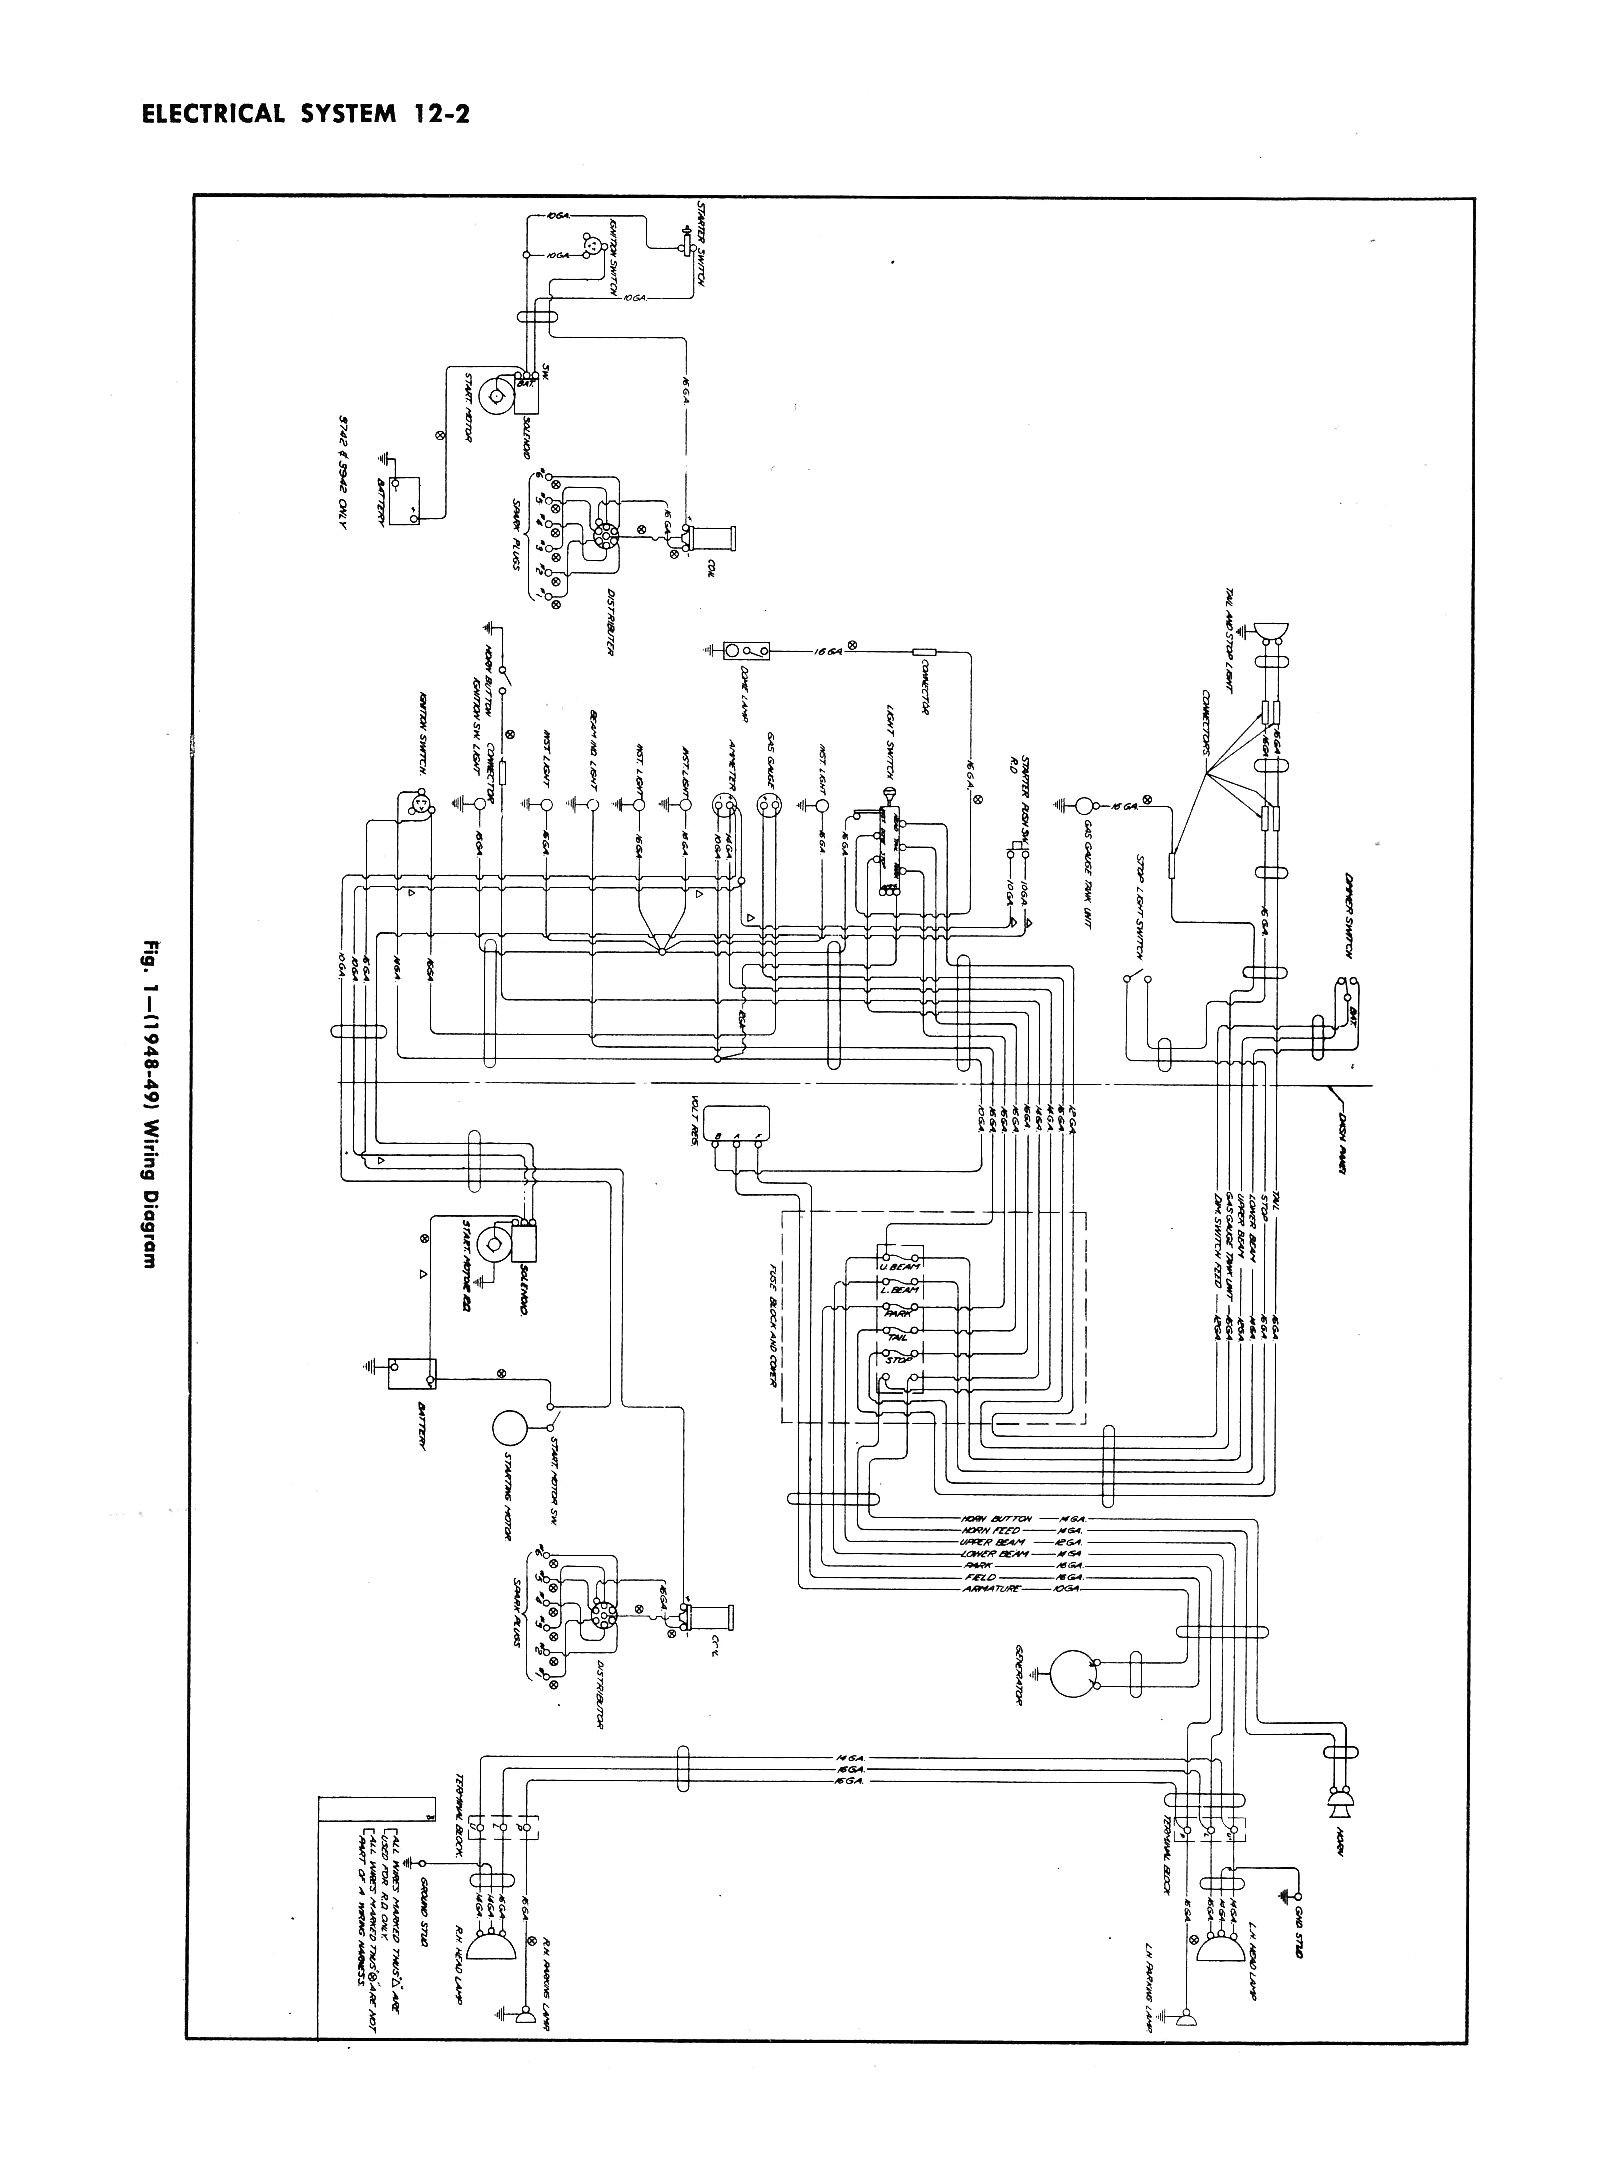 1929 ford wiring diagram wiring library 1932 ford horn wiring diy enthusiasts wiring diagrams u2022 1929 ford wiring diagram 1932 ford